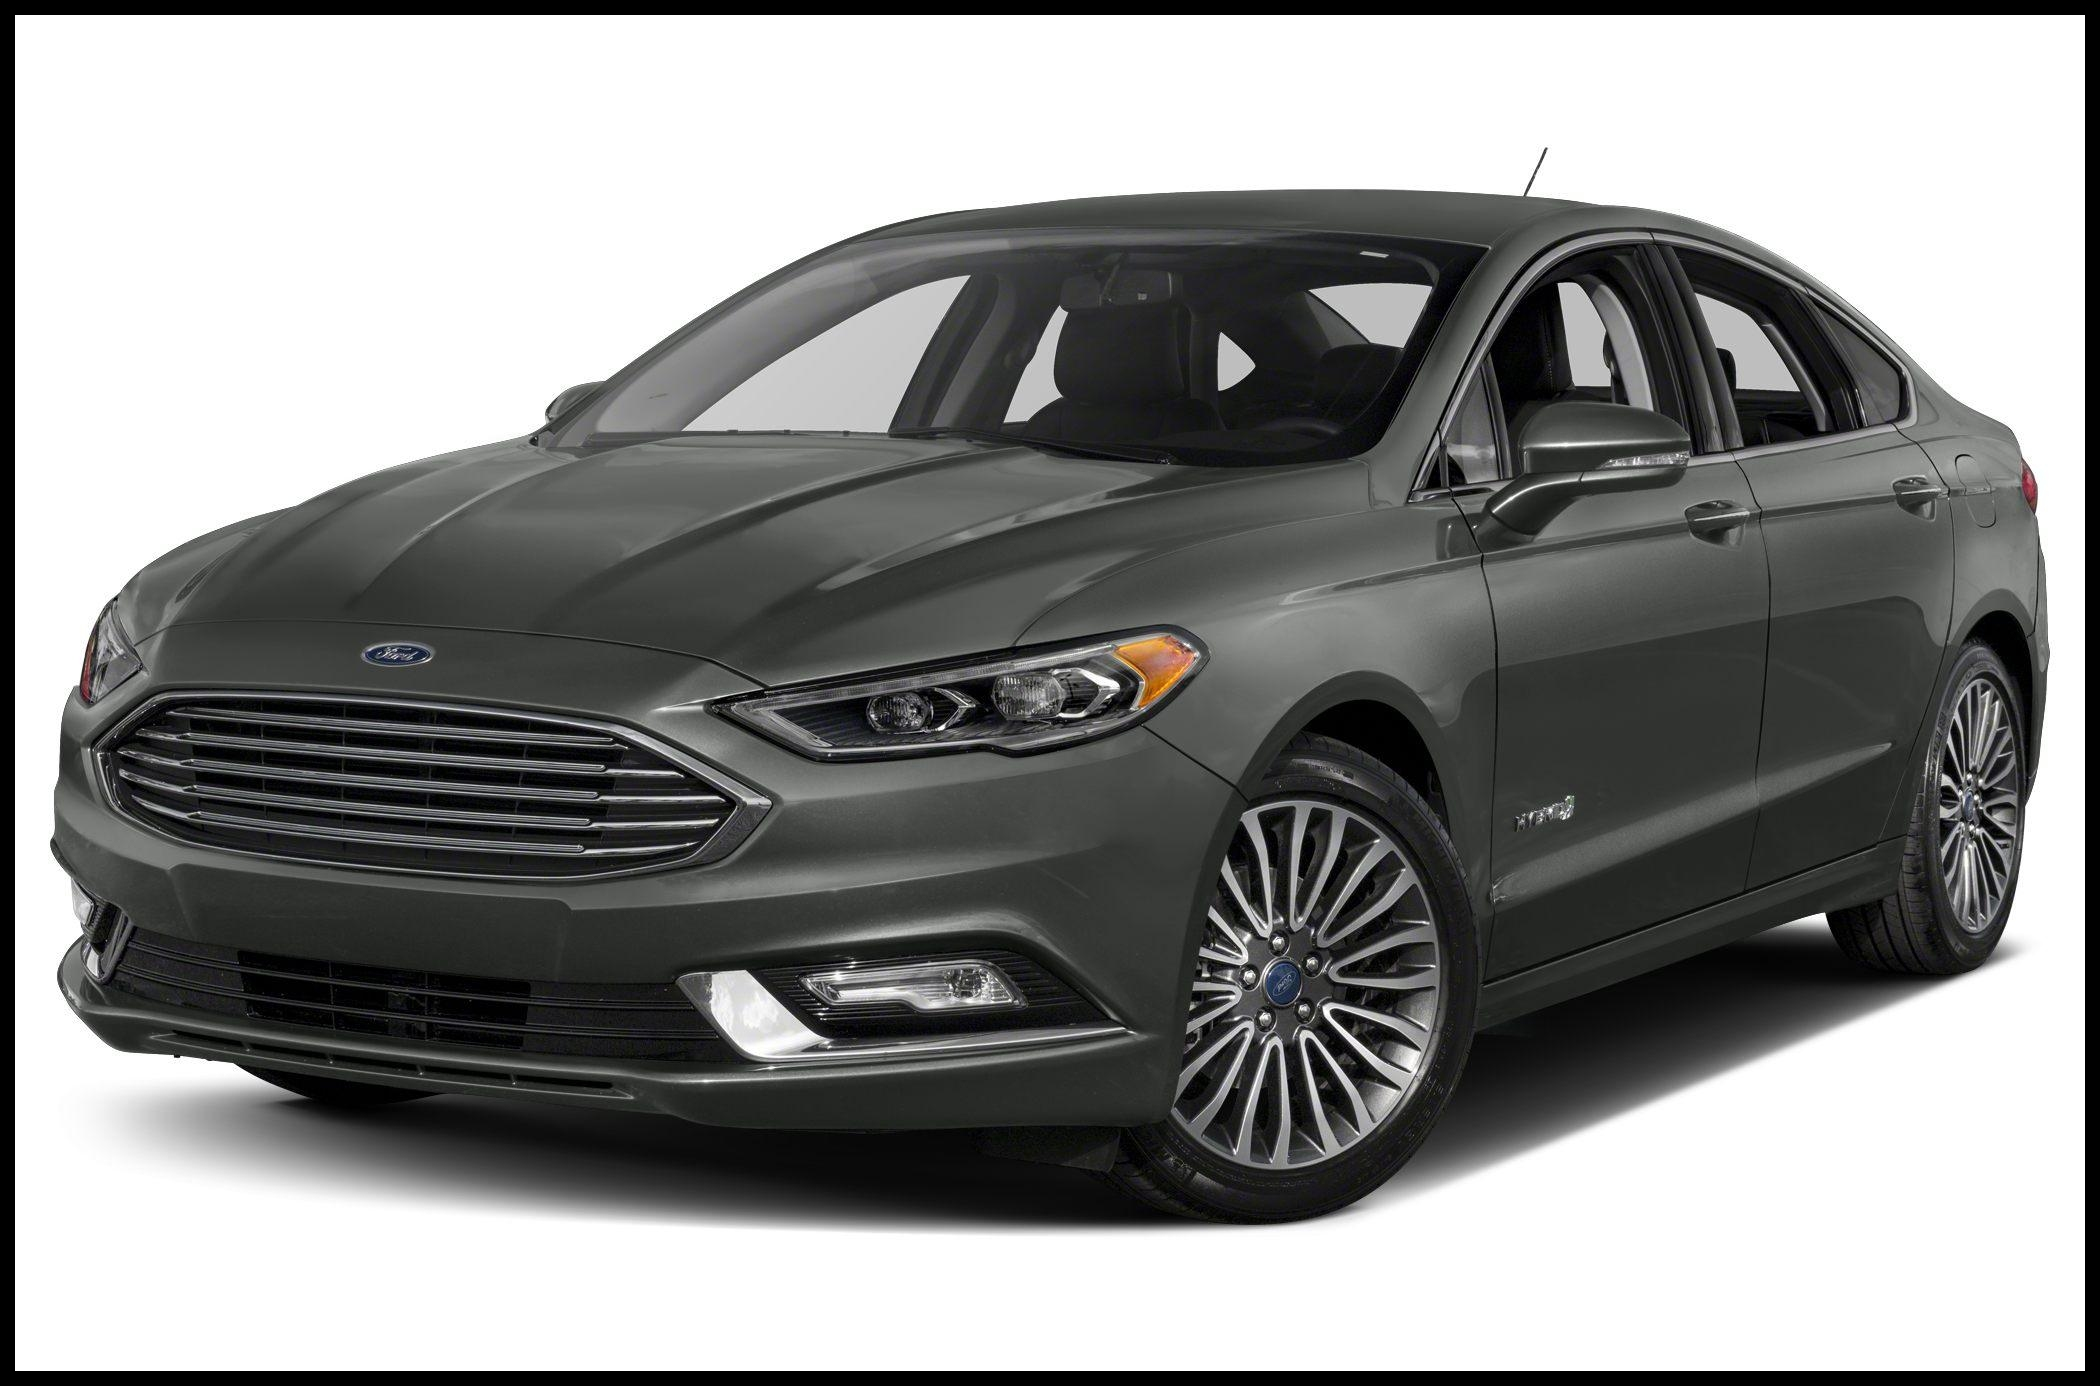 2017 toyota Camry Hybrid Vs 2017 ford Fusion Hybrid and 2017 Concept ford Fusion Vs toyota Camry